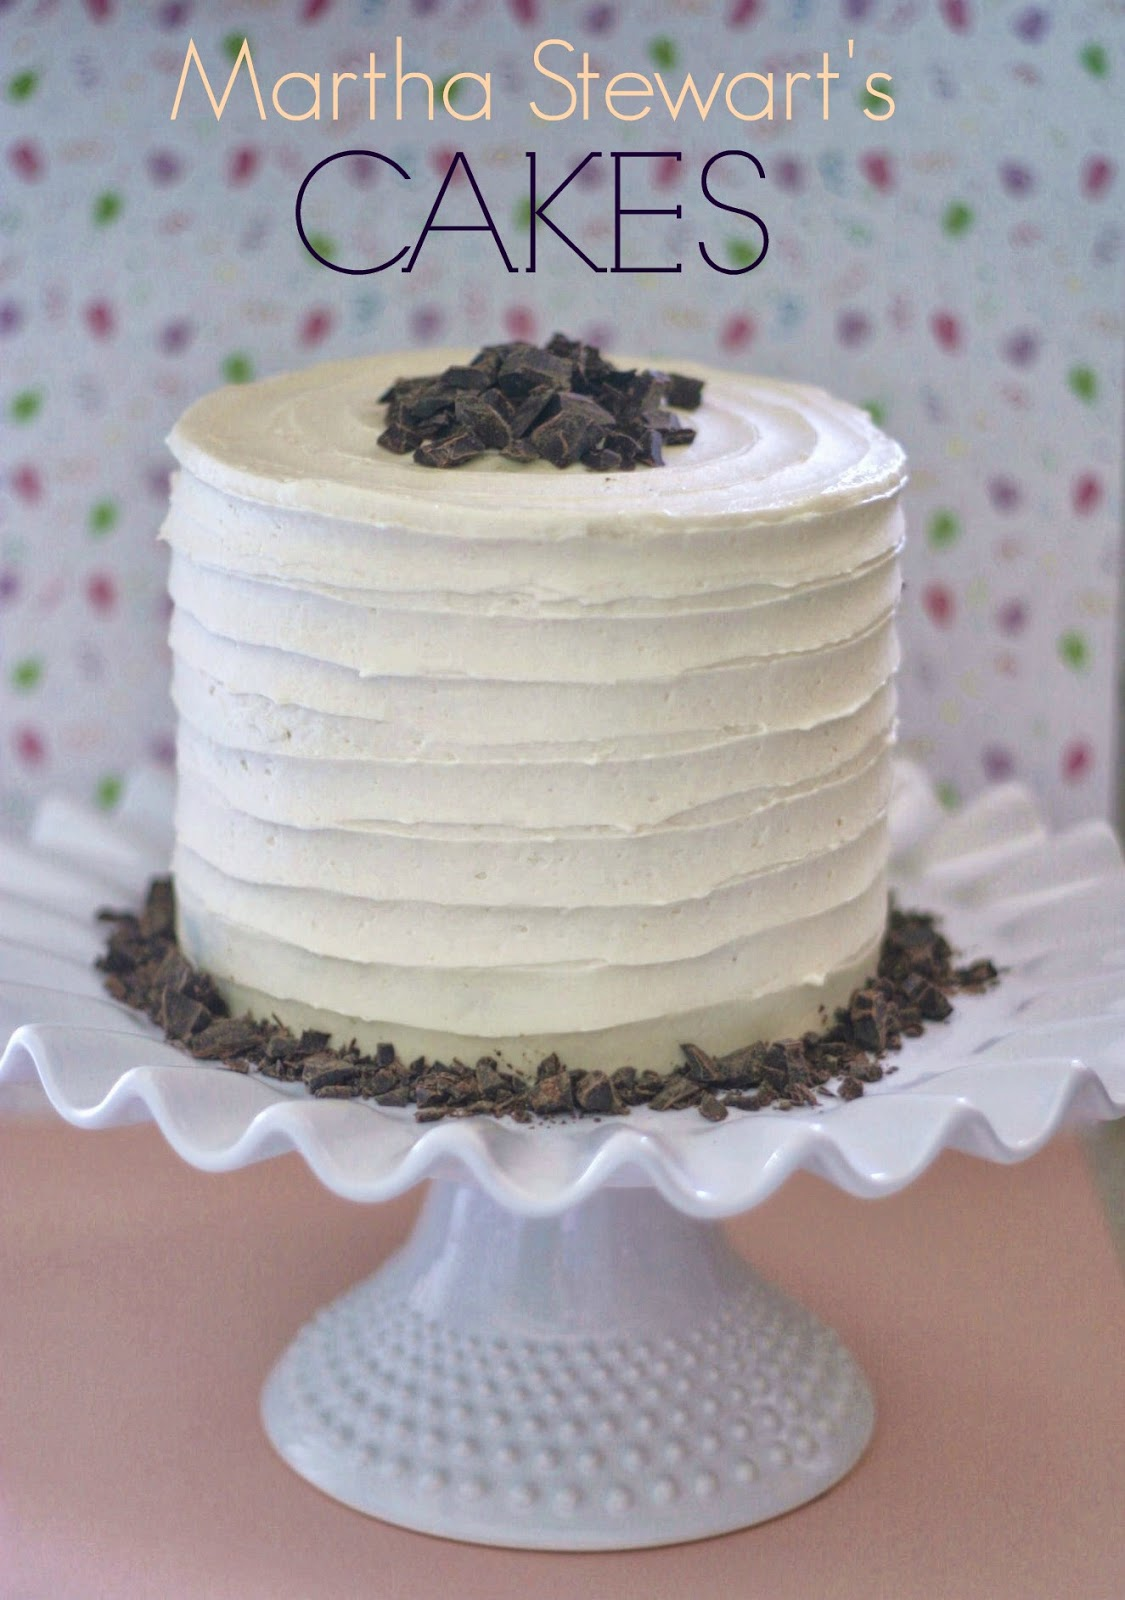 Pink Little Cake Reviewing Martha Stewart s CAKES book